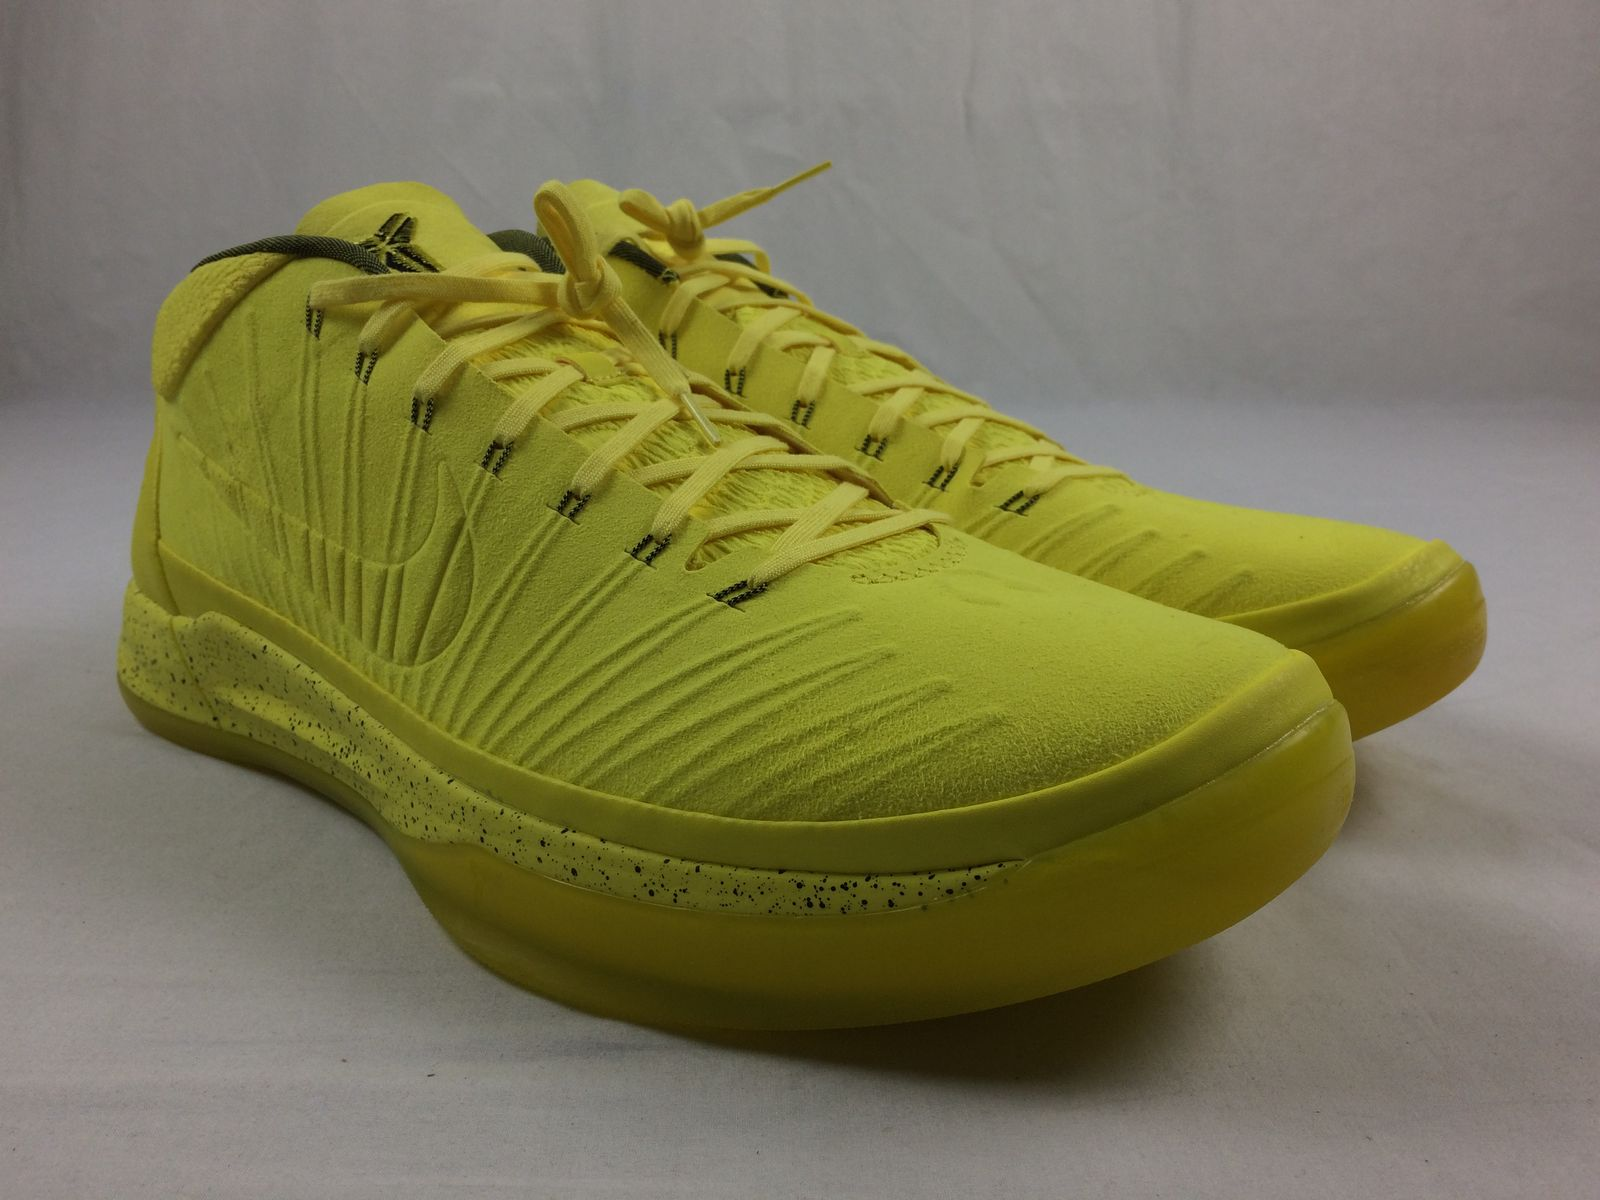 3d6a6ce15a6c Details about NEW Nike Kobe A.D. Sonic Yellow - Yellow Basketball Shoes (Men s  18)